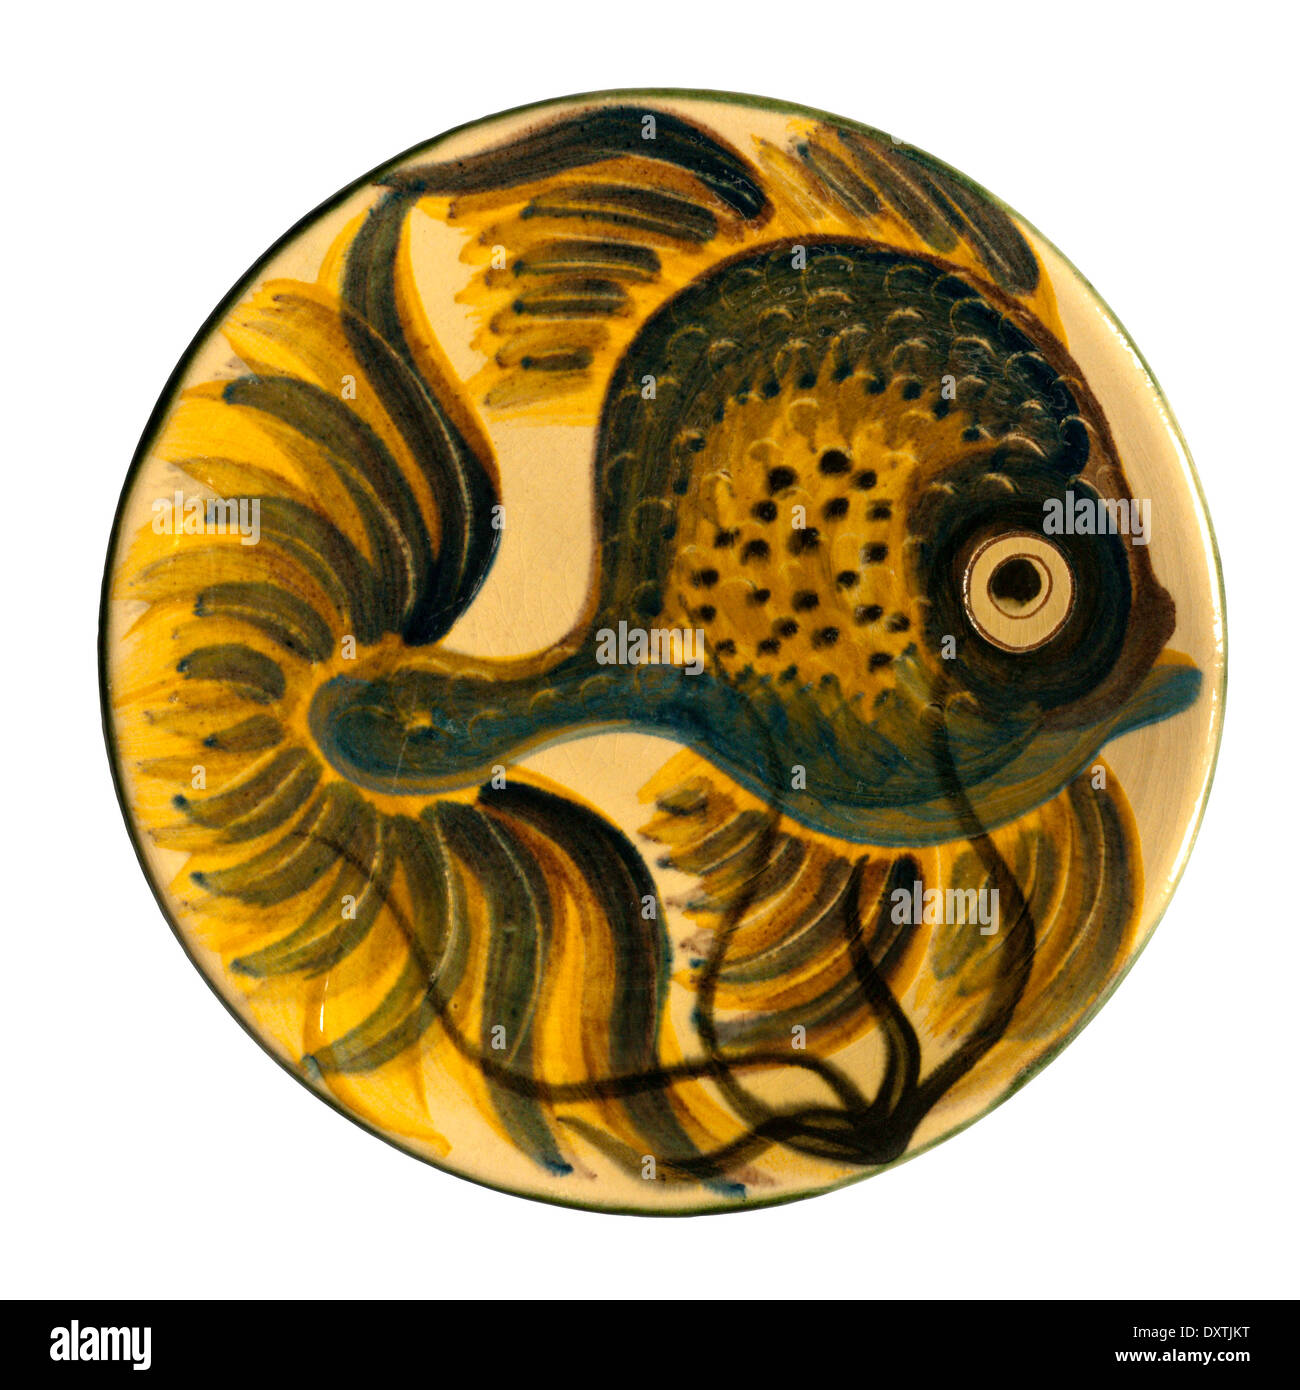 Plate with a fish design from the Puigdemont Studio in Catalonia - a typical 1950s holiday souvenir from Spain. - Stock Image